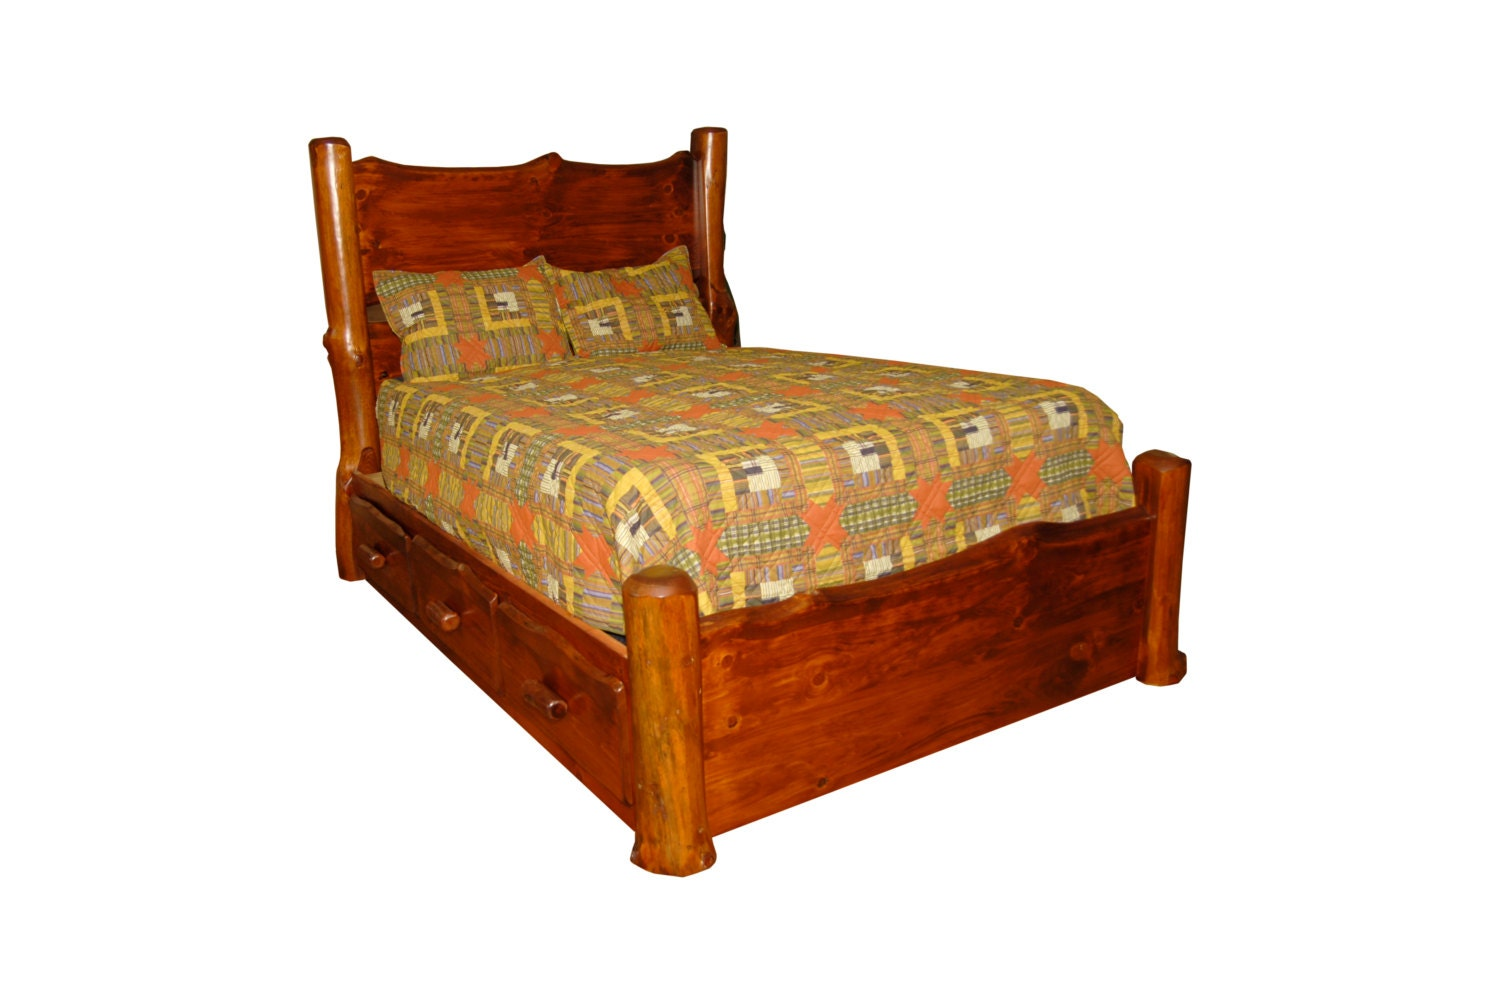 Log Queen Bed Frame 28 Images Log Queen Bed Frame With Hton Rhodes Mattress Rustic Red